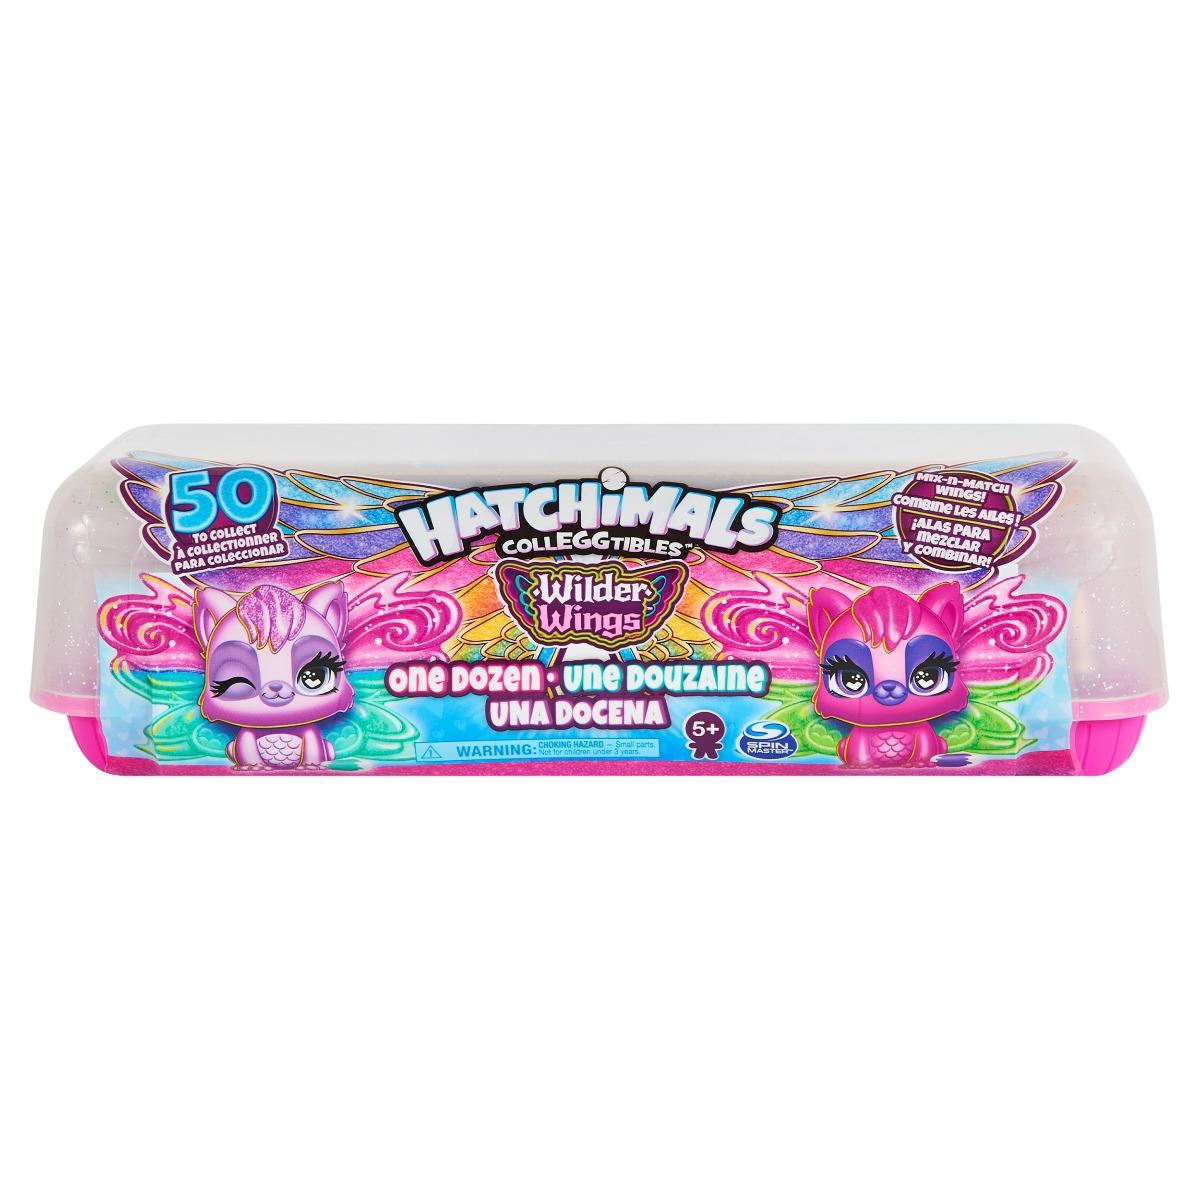 Figurine de colectie Hatchimals Wilder Wings, 12 buc